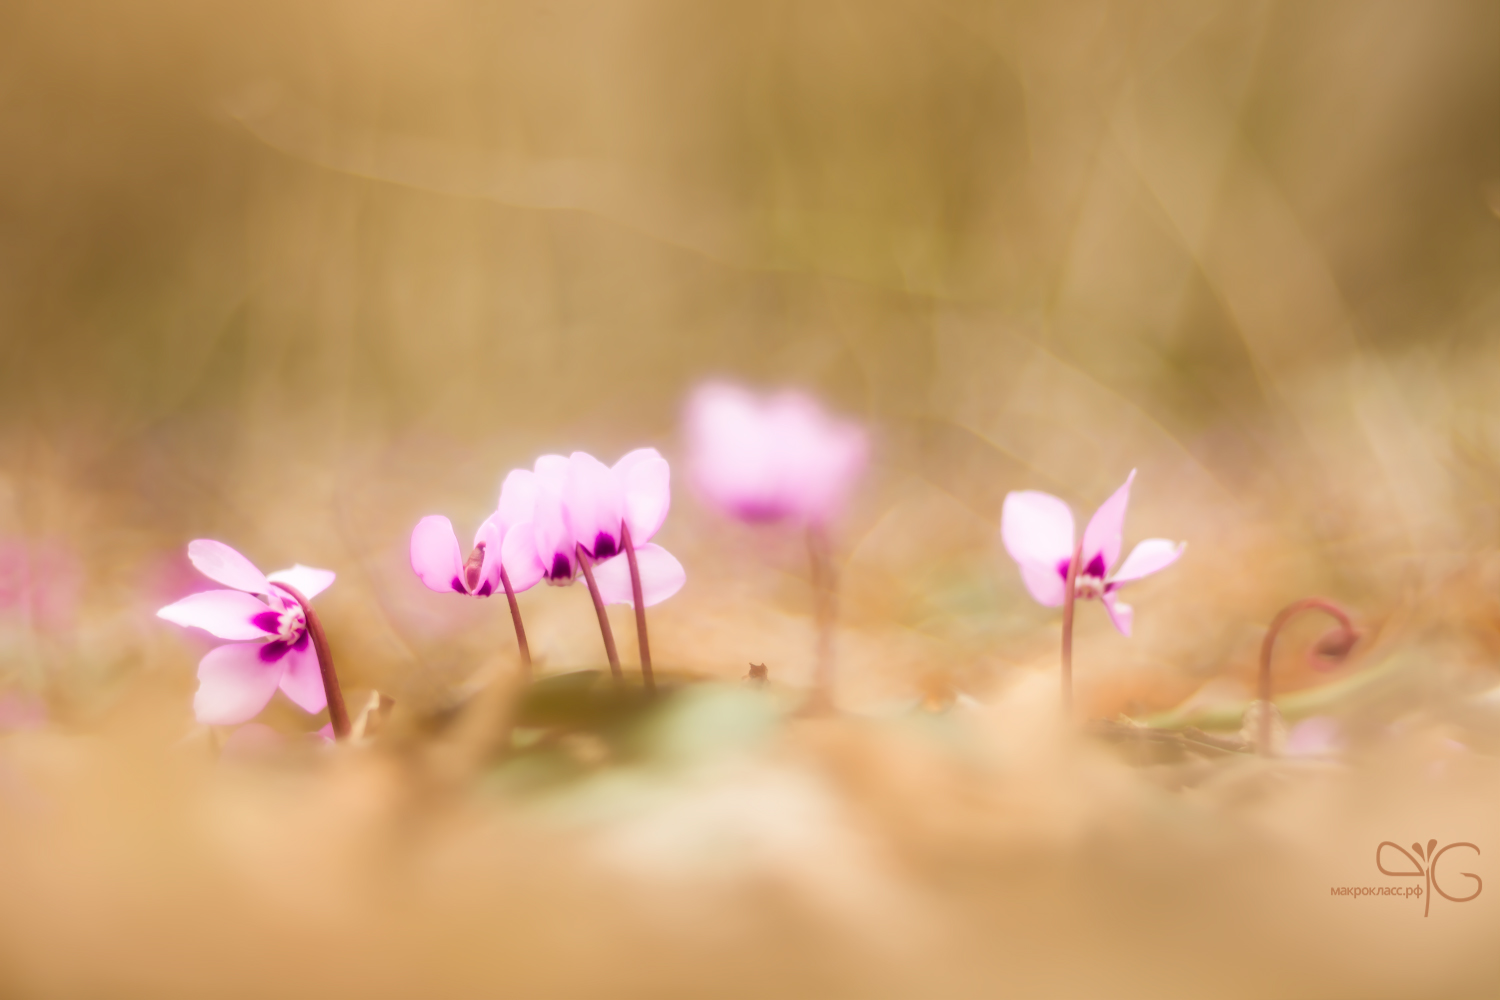 Little pink cuties at a nowhere lawn